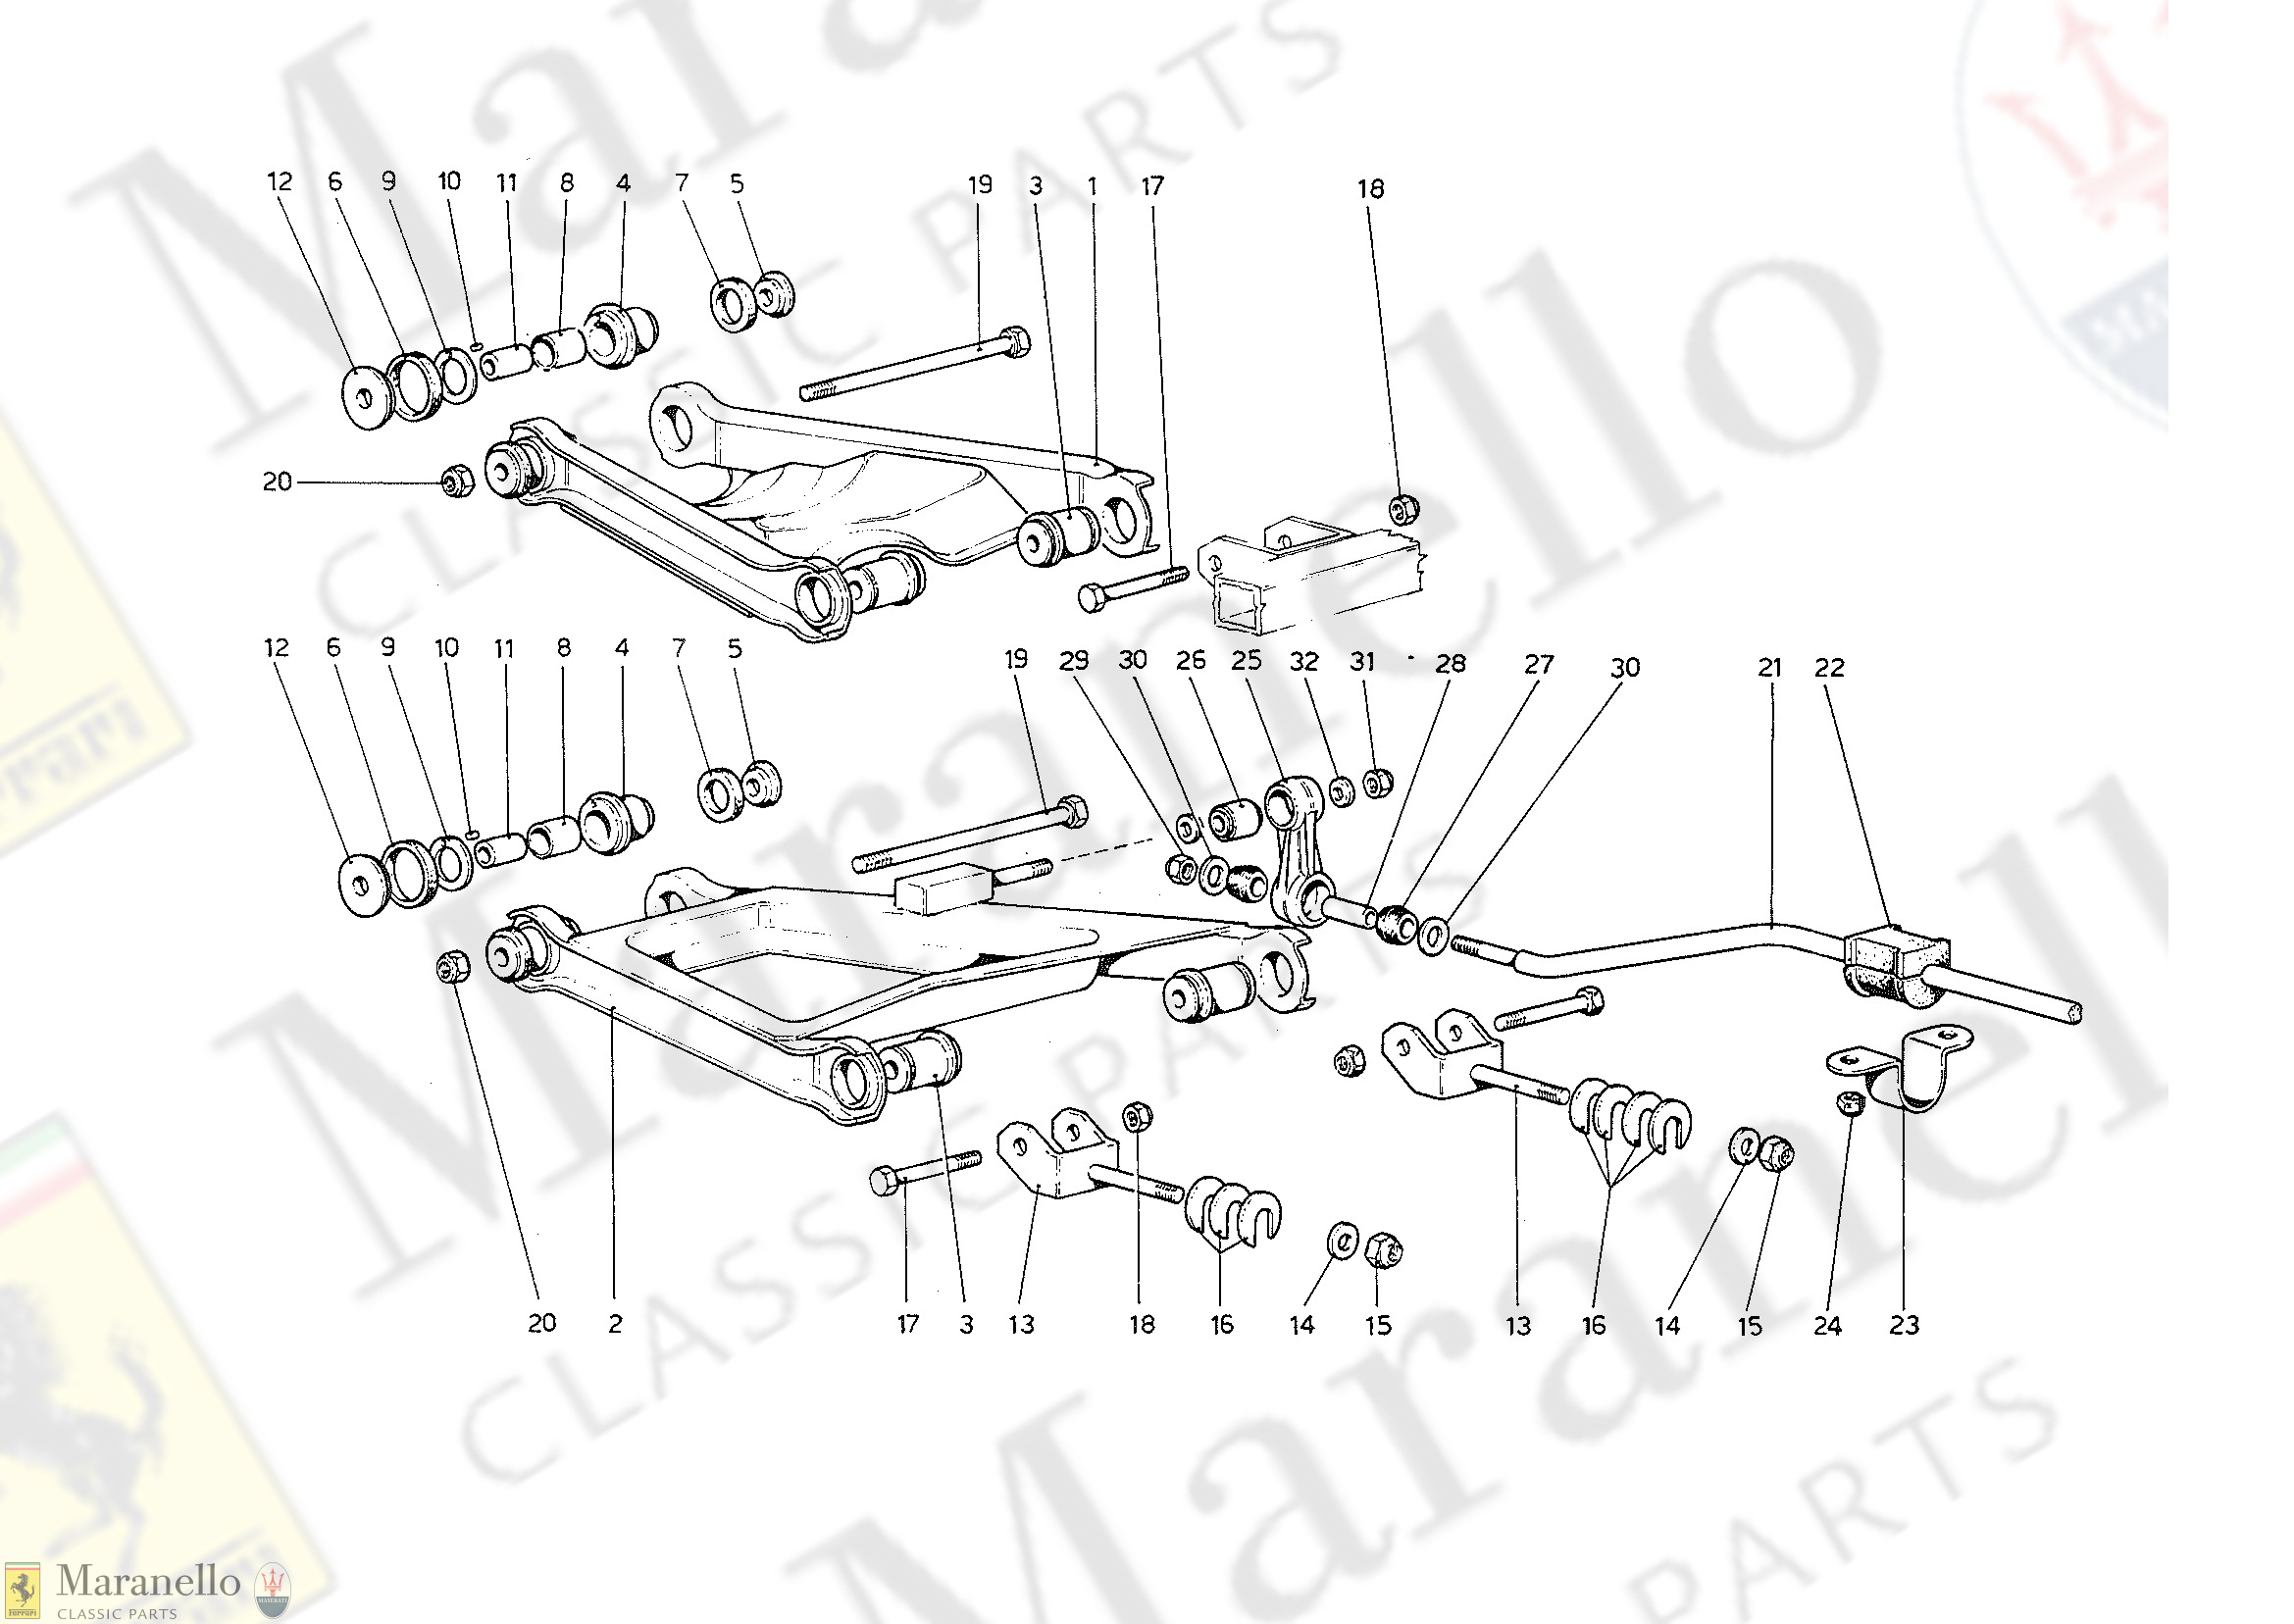 040 - Rear Suspension - Wishbones